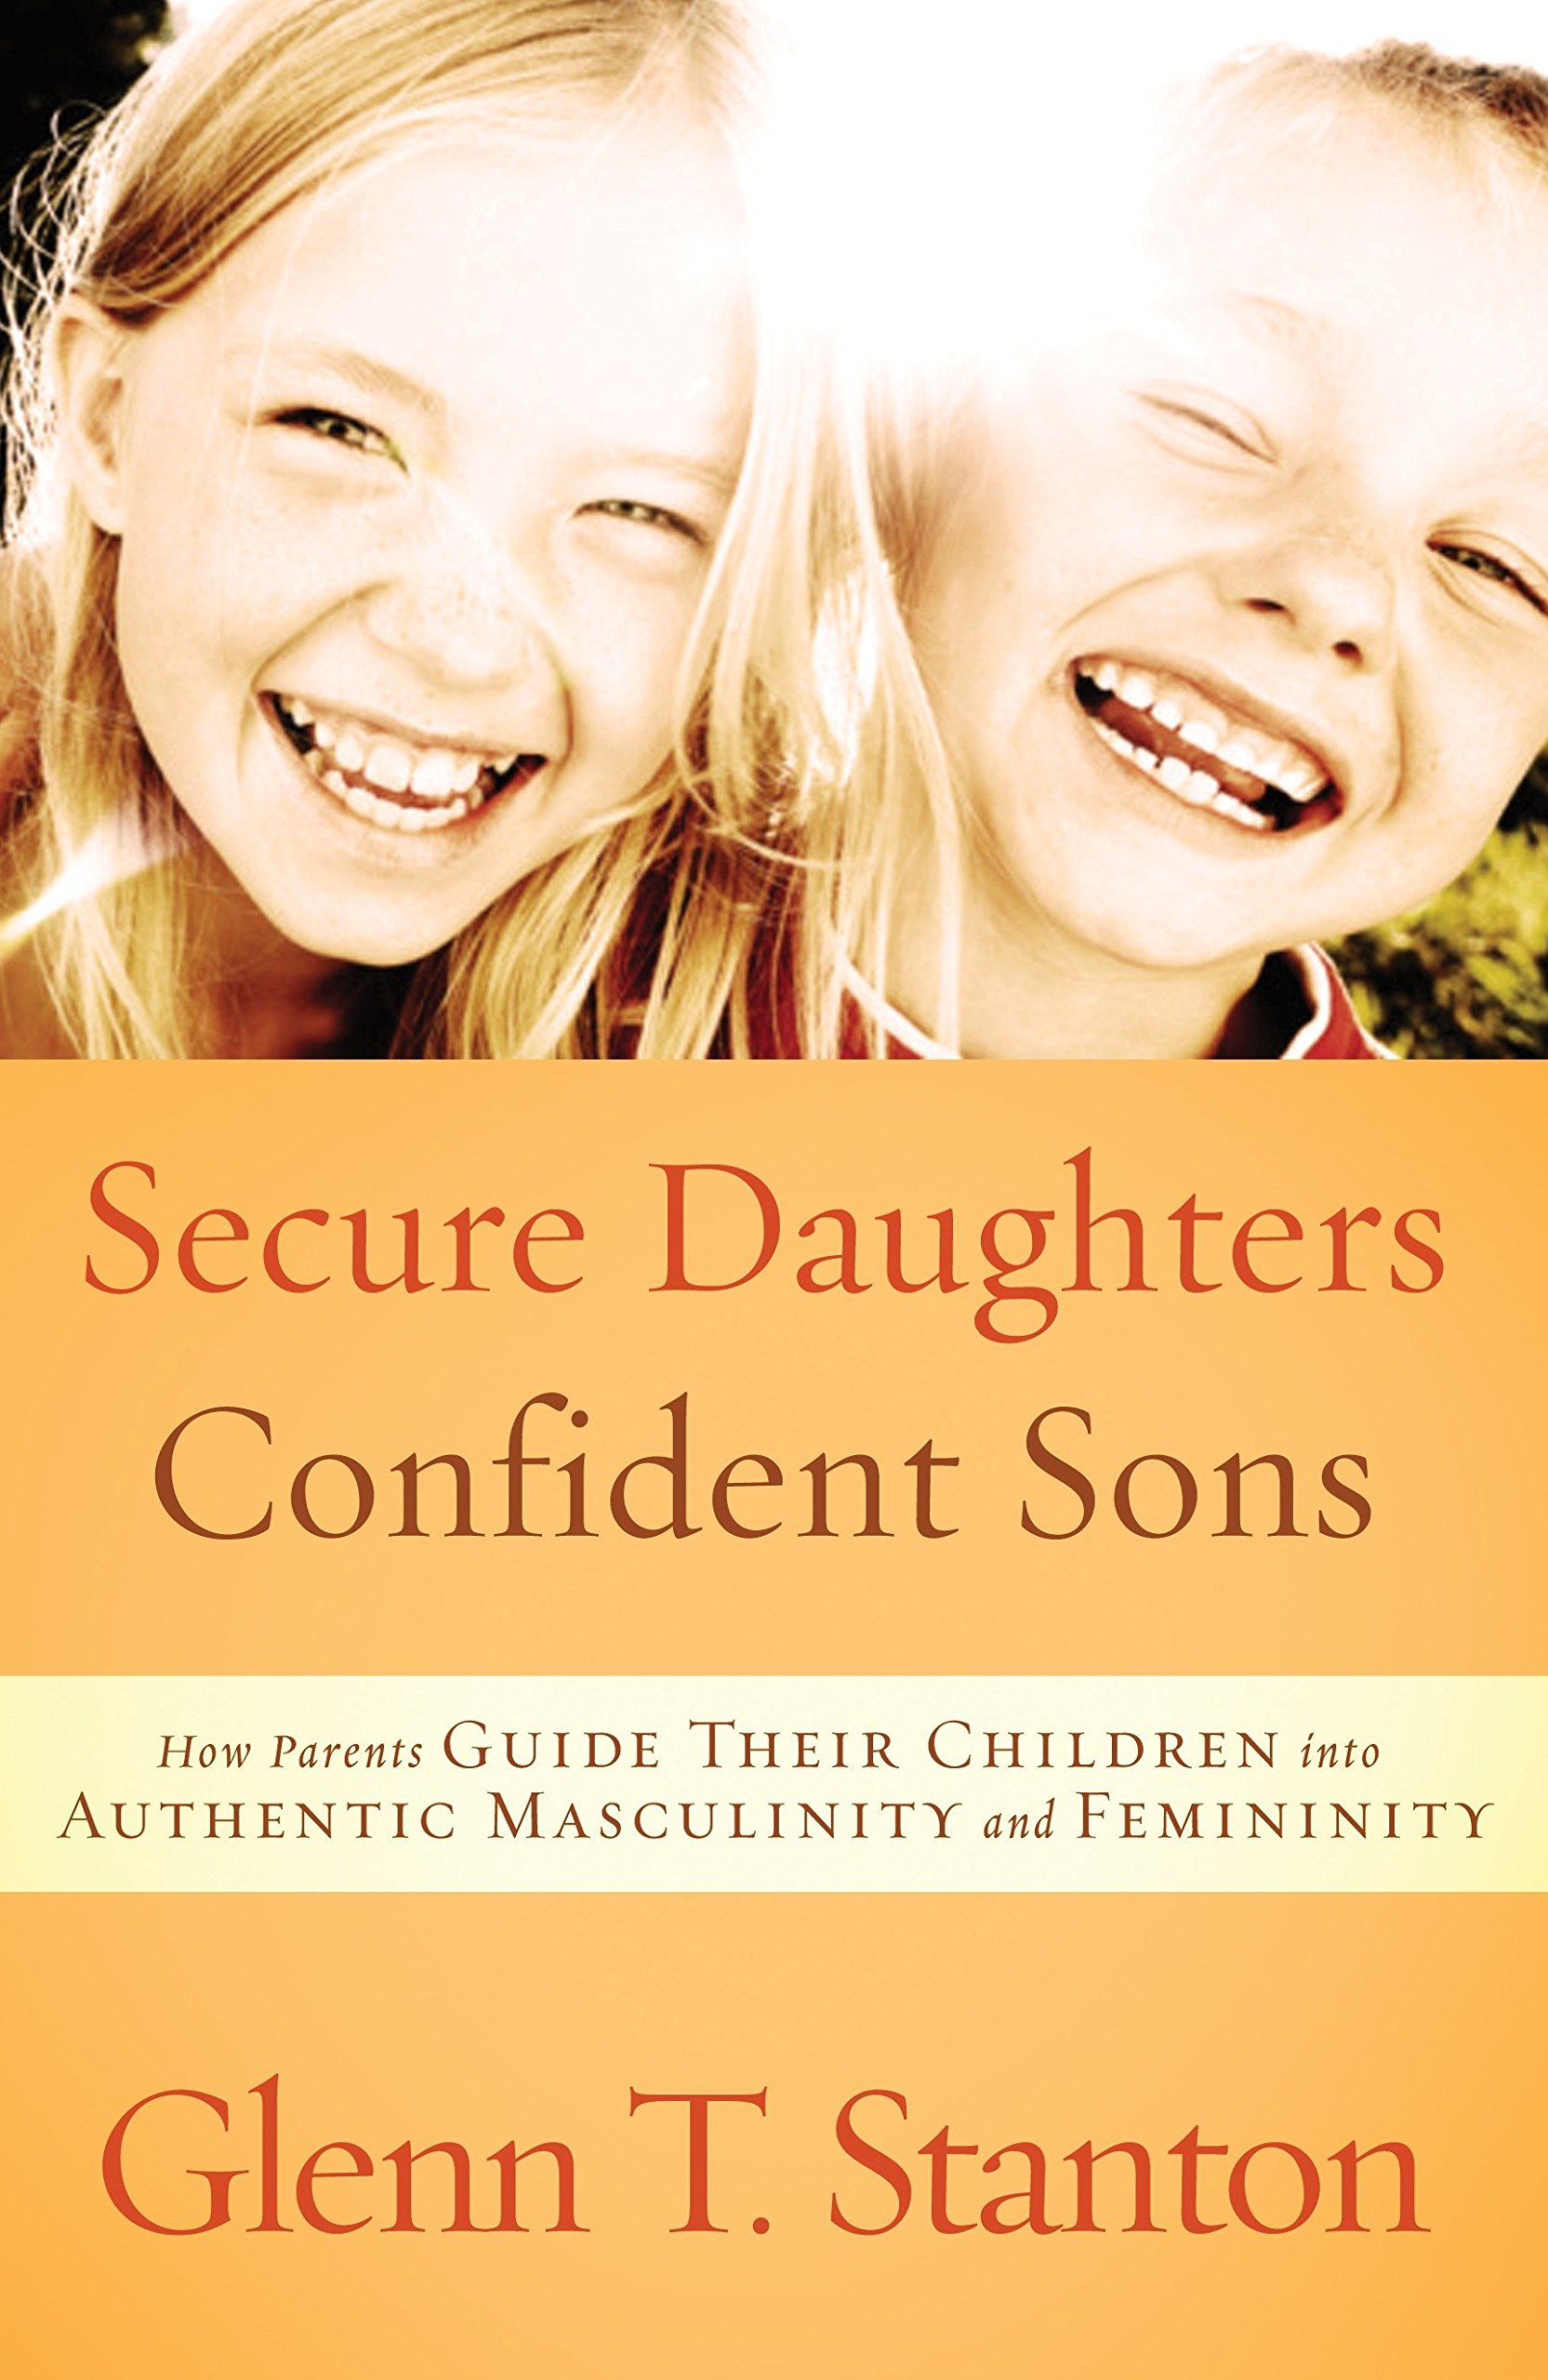 Secure Daughters, Confident Sons: How Parents Guide Their Children into Authentic Masculinity and Femininity Text fb2 ebook